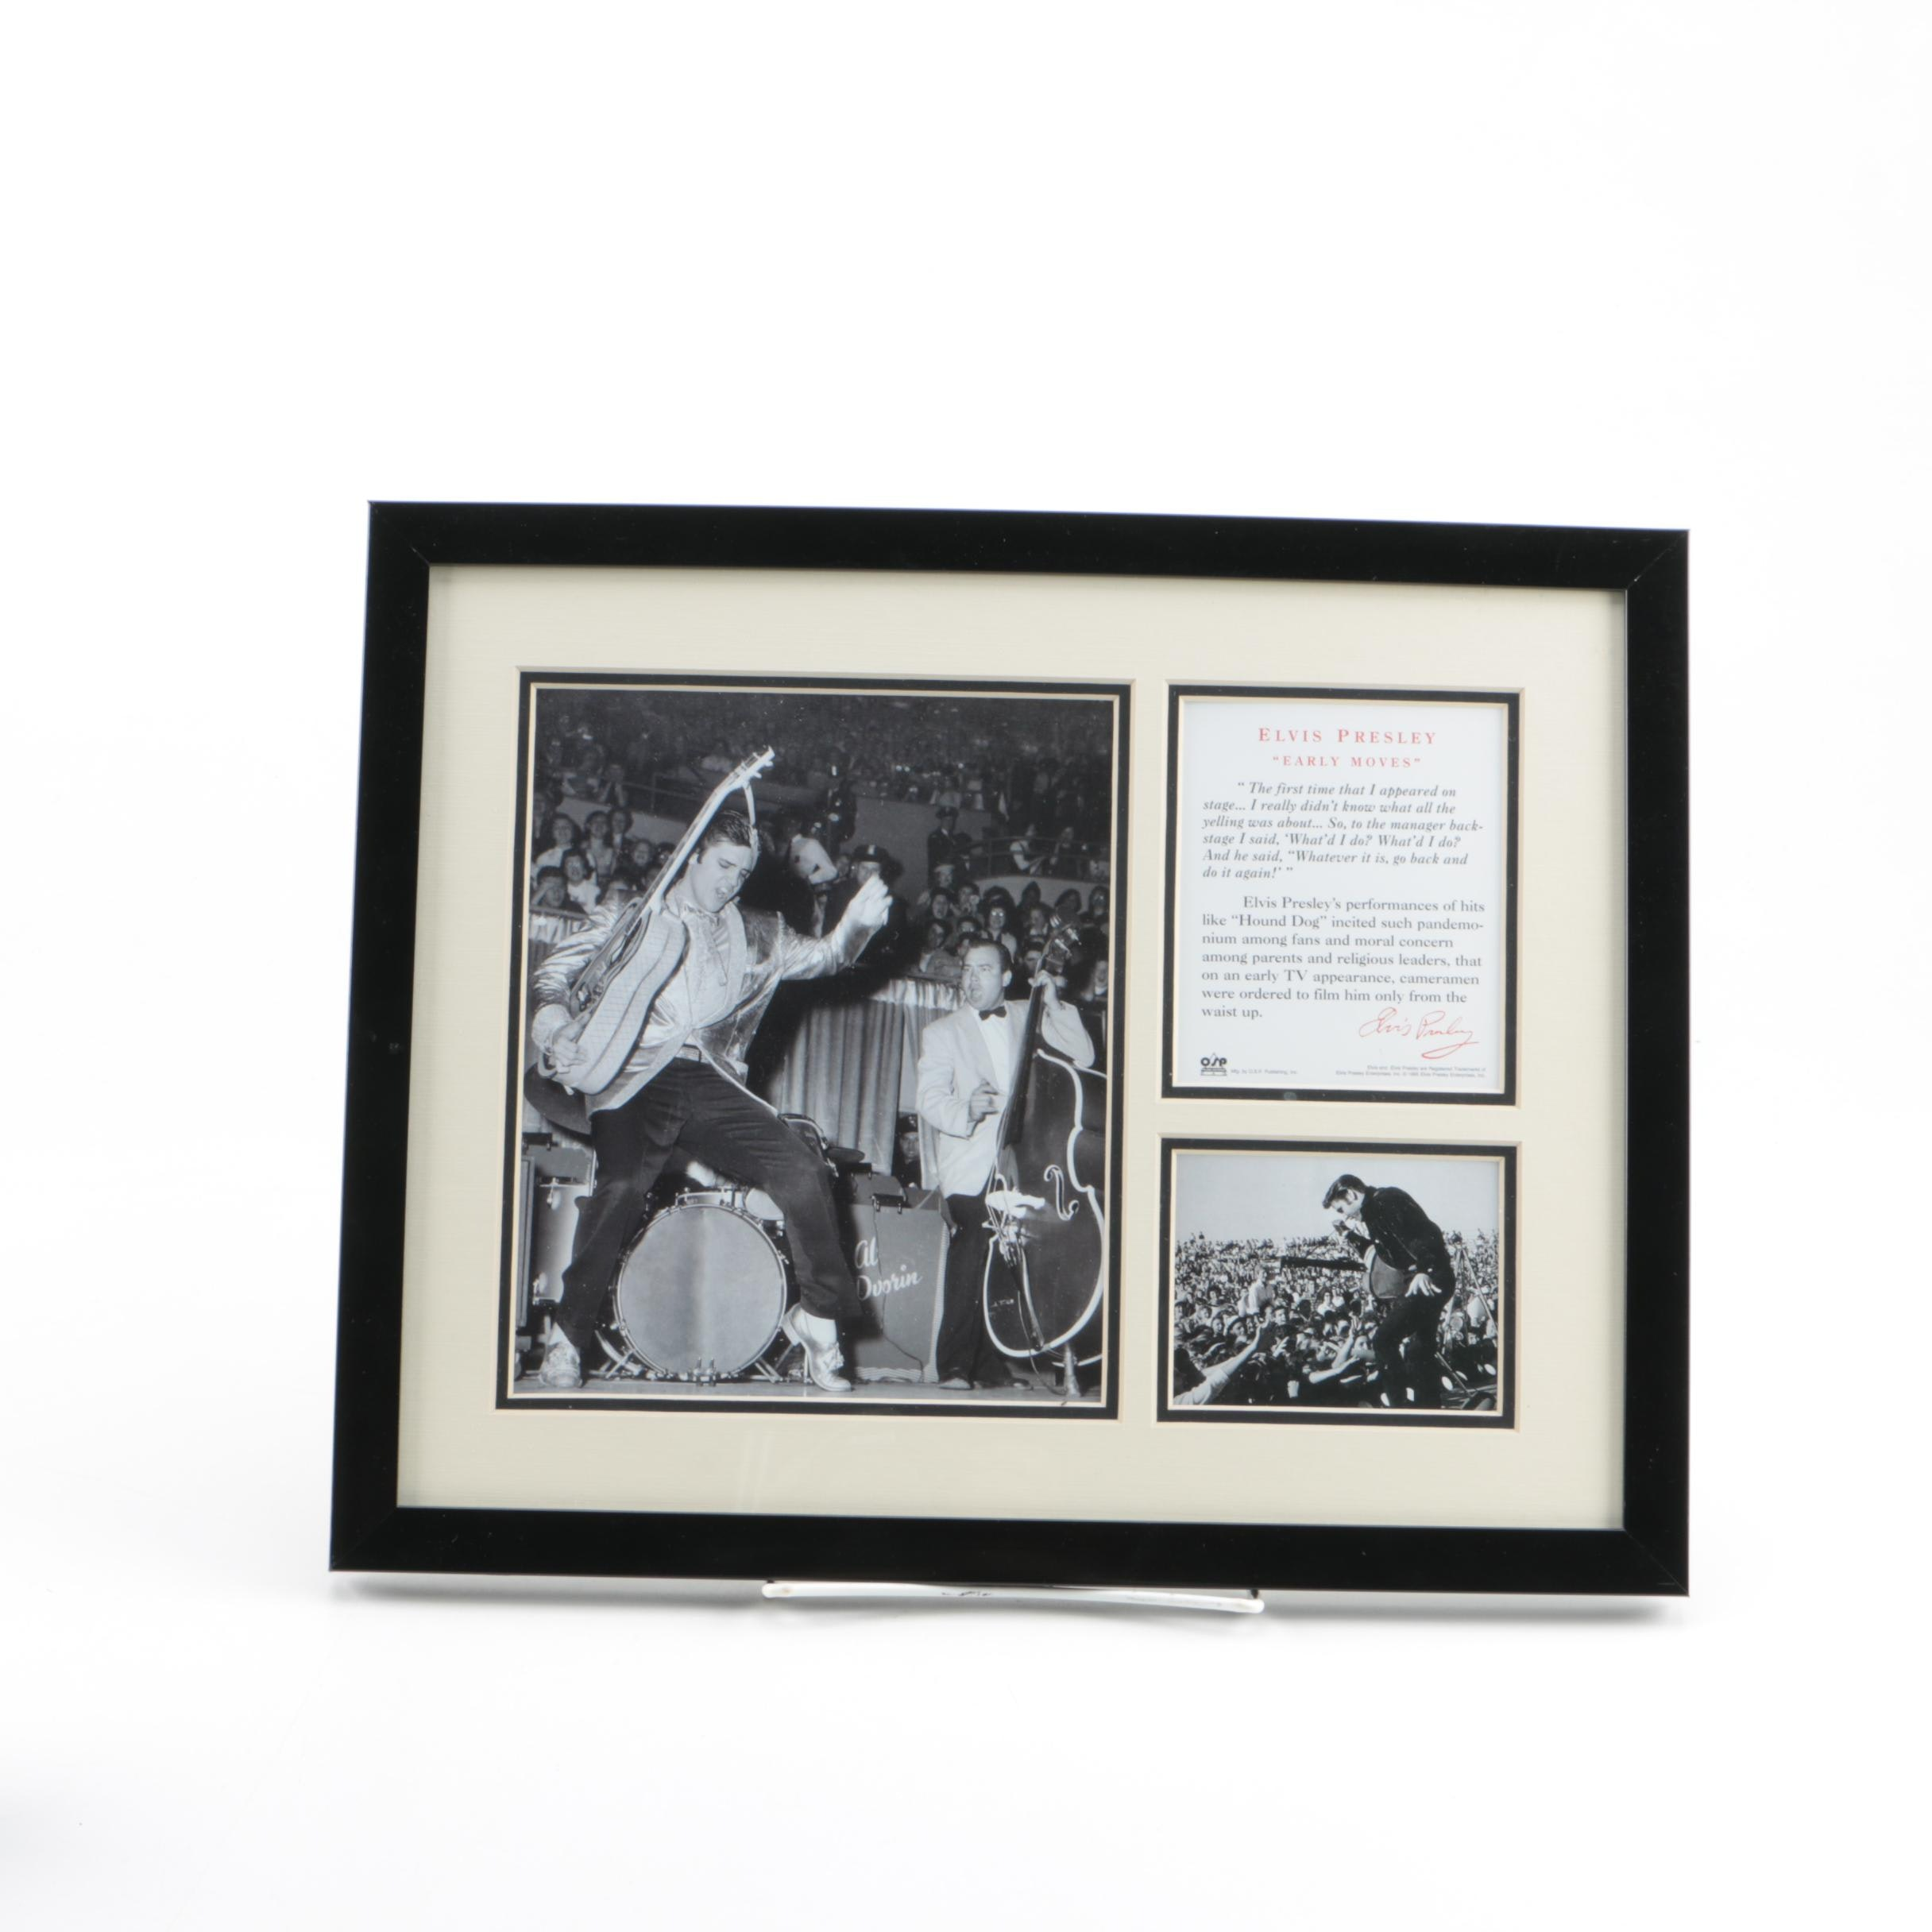 Elvis Presley Special Collector's Edition Framed Prints From O.S.P. Publishing